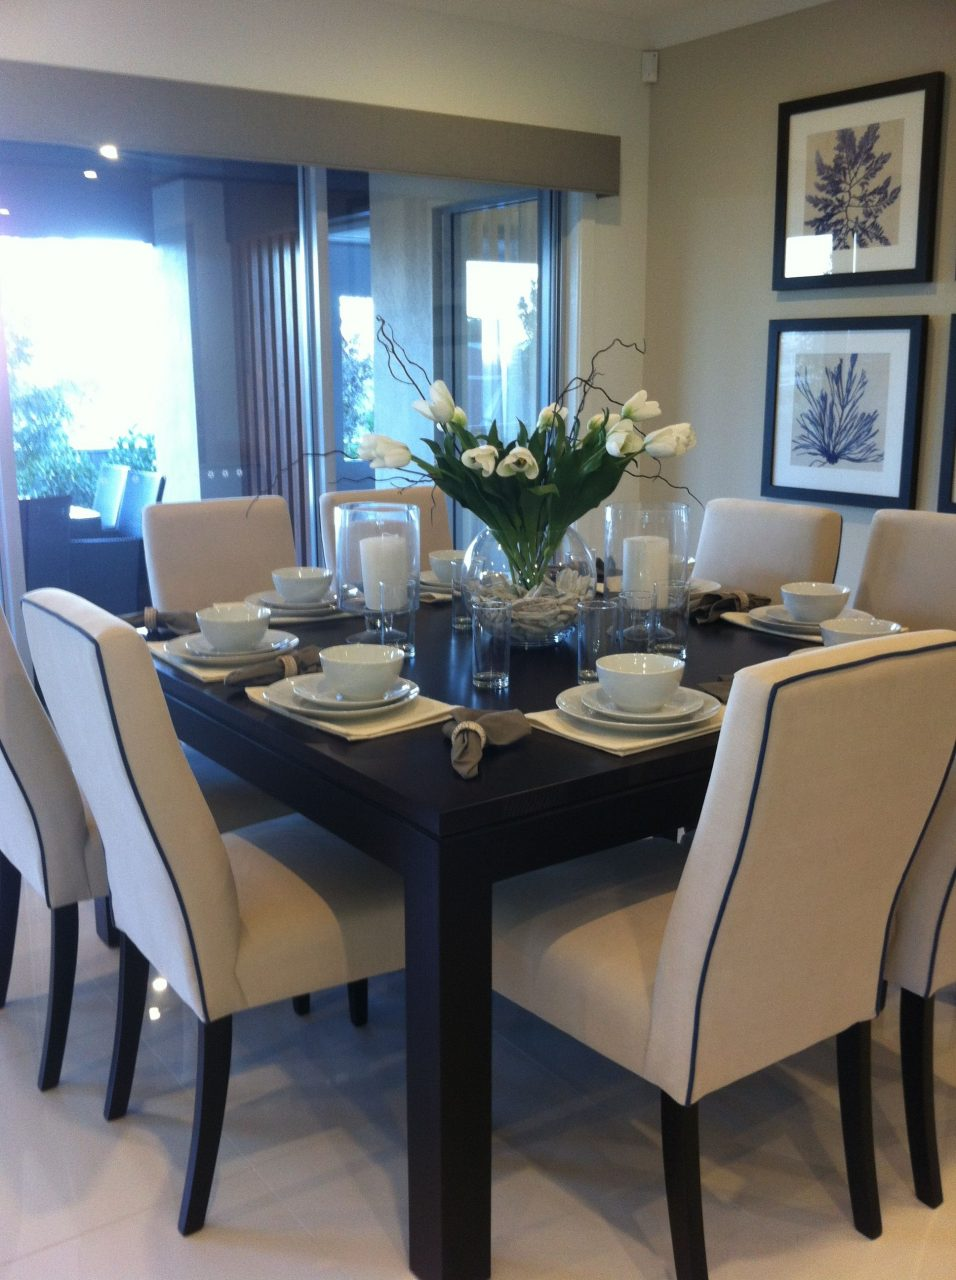 Want This Dinning Room Set Dining In Style Pinterest Room Set